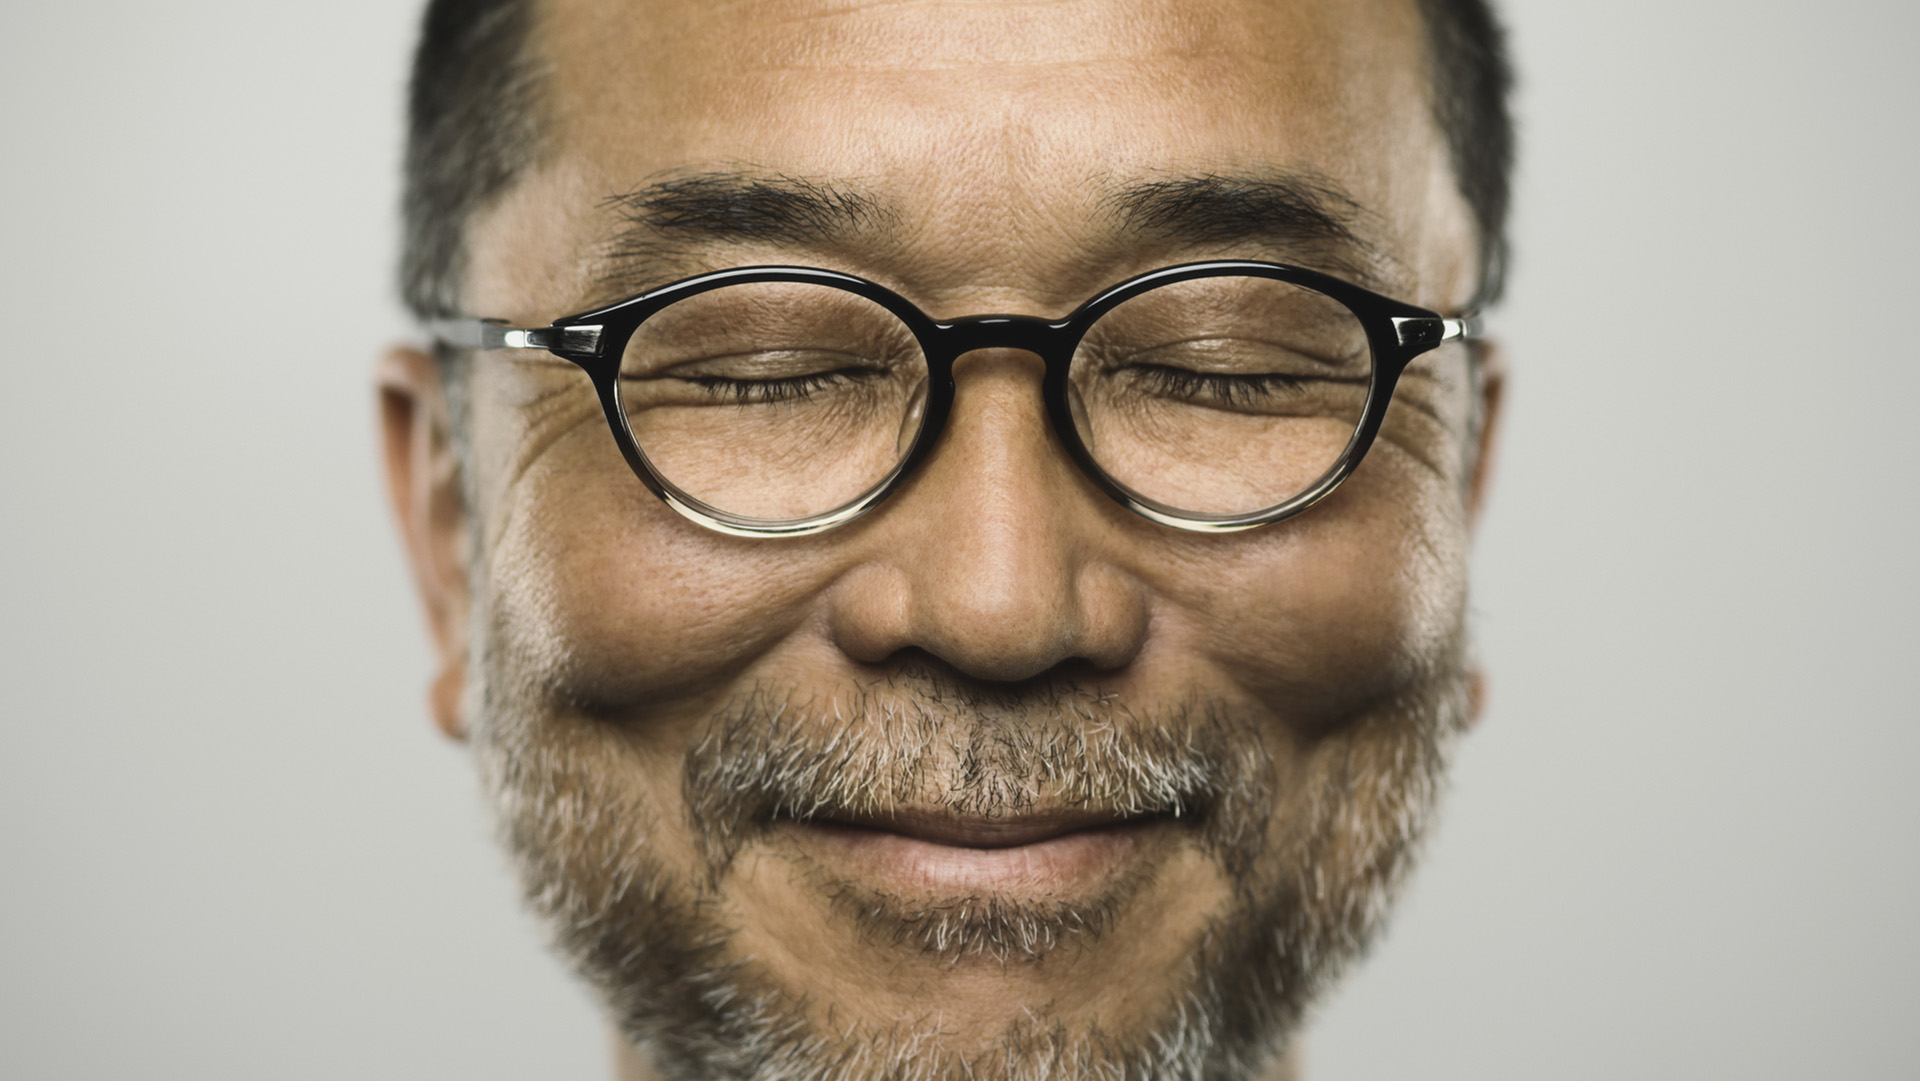 Studio portrait of a japanese mature man looking at camera with relaxed expression. The man has around 50 years and has glasses, short hair and a short grey beard. Vertical colour image from a medium format digital camera.